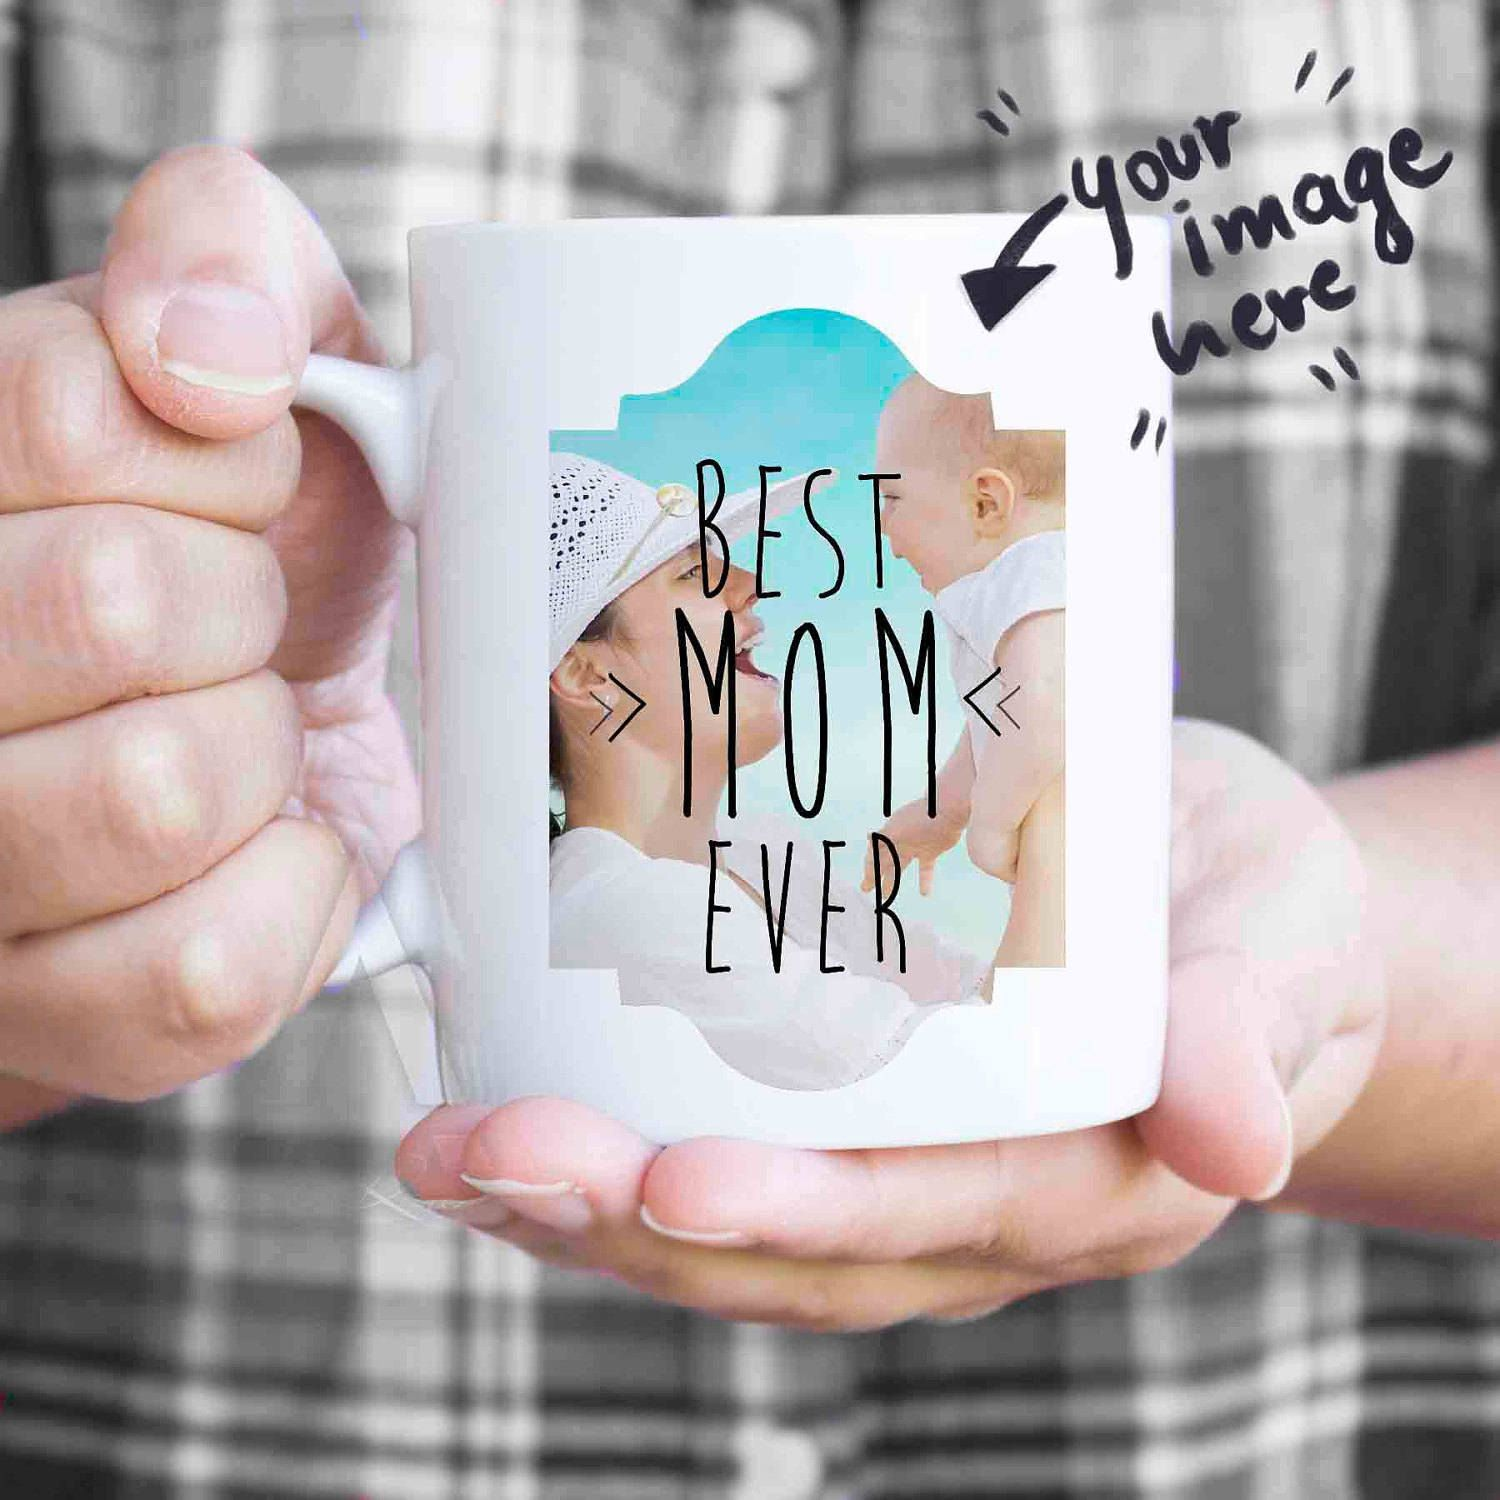 Mothers Day From Husband Mom Photo Mug Gifts For Custom Mugs Daughter New Gift Basket Mu458 By Artruss On Etsy